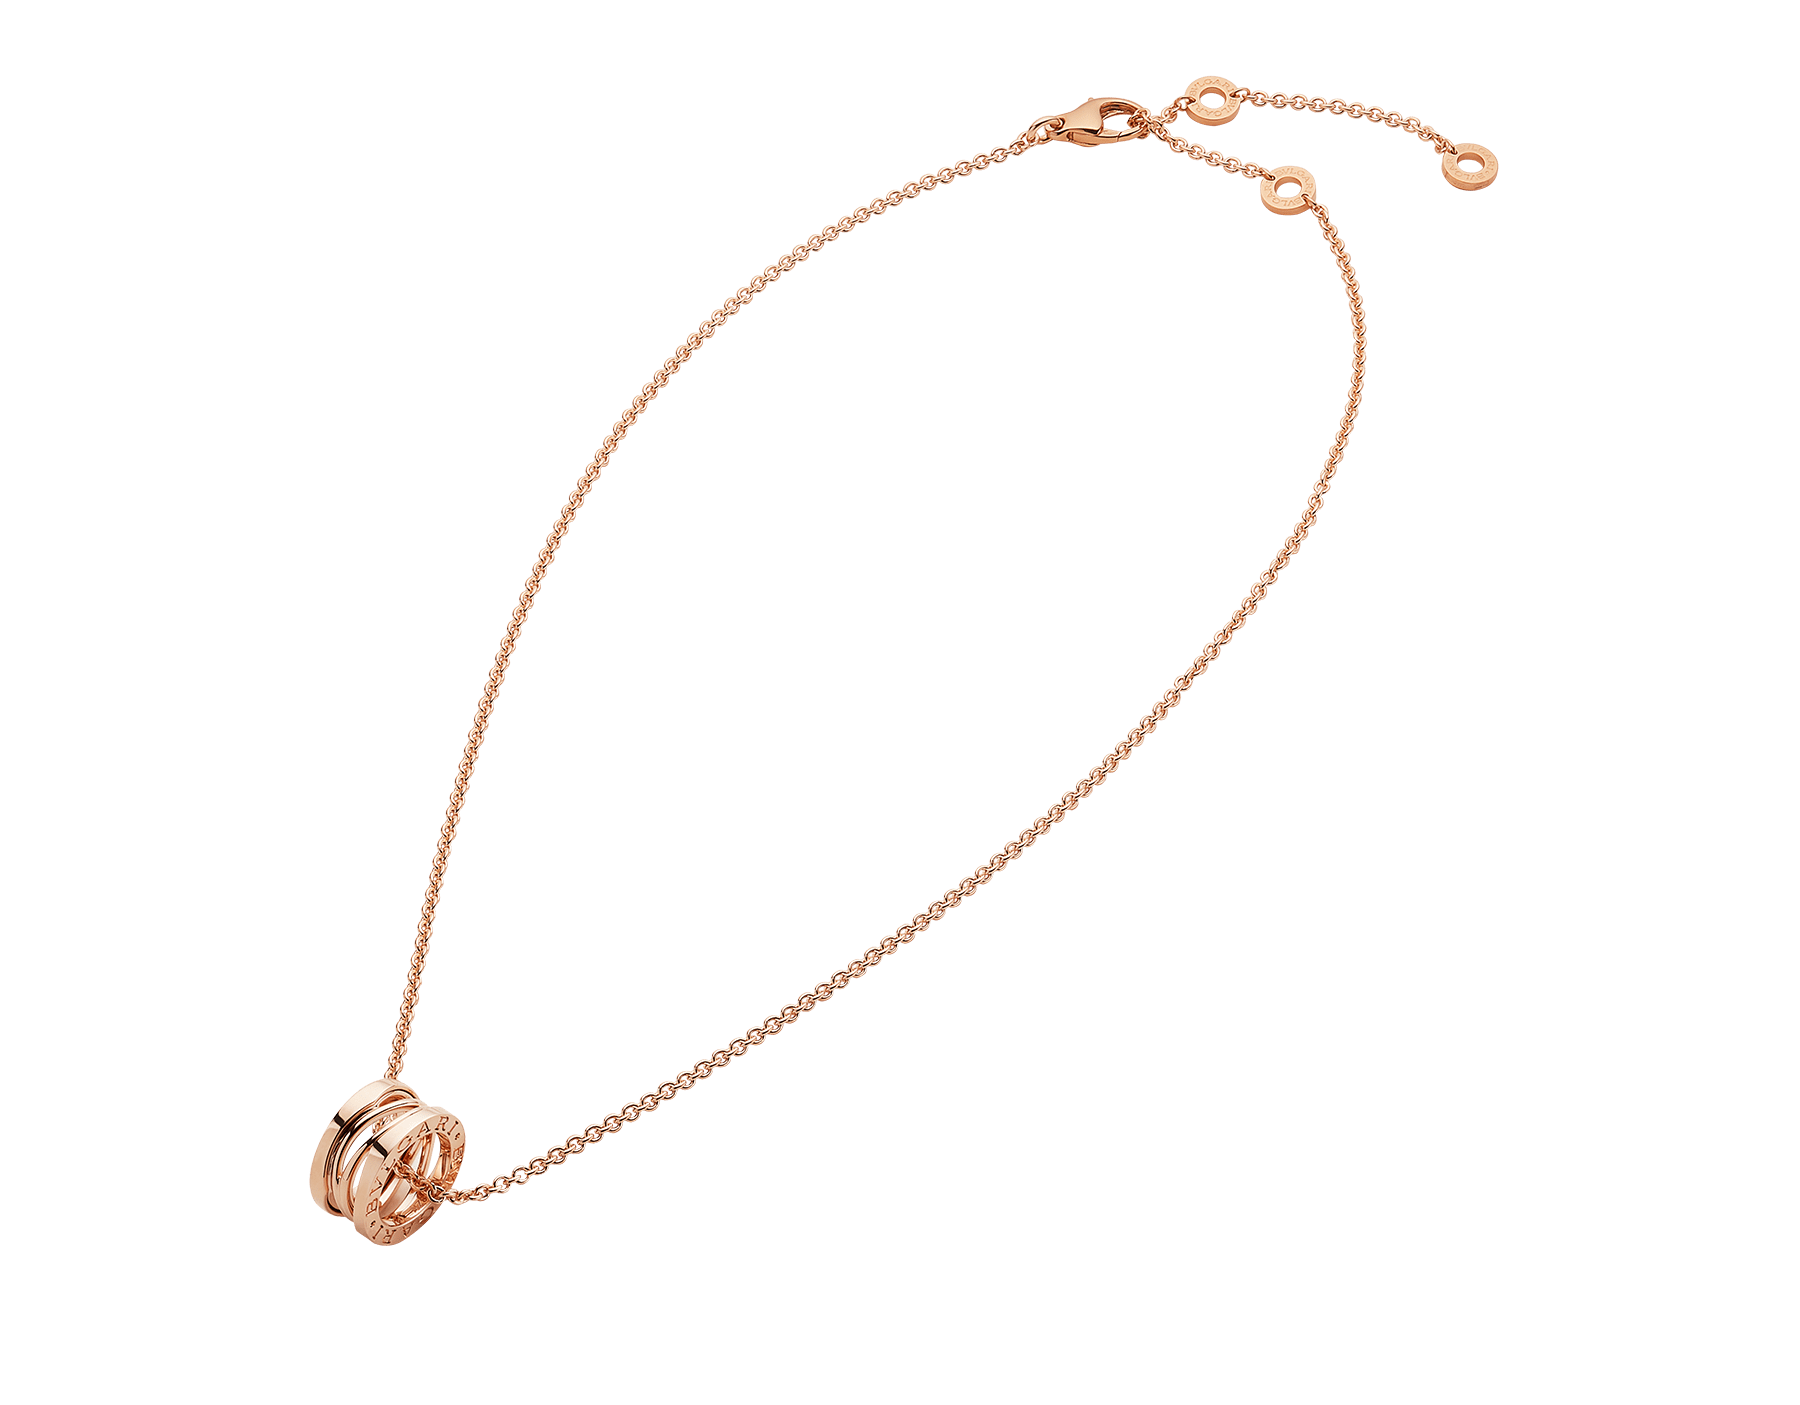 B.zero1 Design Legend necklace with pendant, both in 18 kt rose gold. 353795 image 2